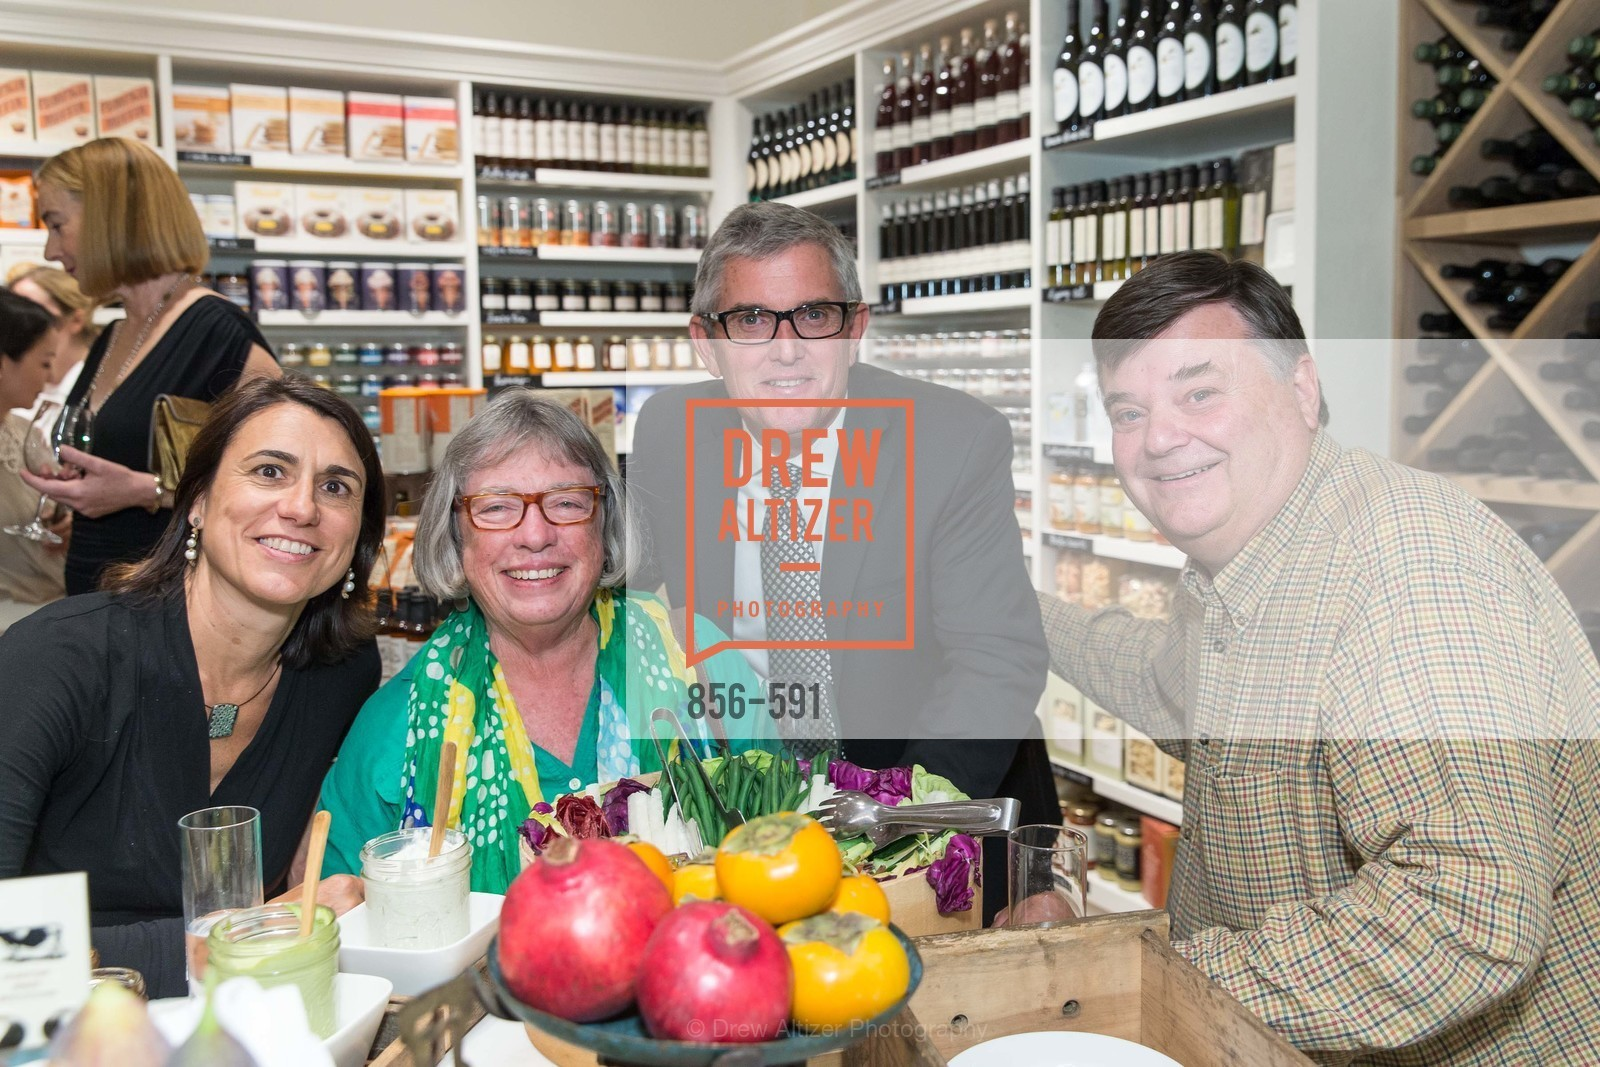 Eva Bertran, Katherine Hill, Tom Rouse, David Brown, CHUCK WILLIAMS Birthday Celebration, US, October 2nd, 2014,Drew Altizer, Drew Altizer Photography, full-service agency, private events, San Francisco photographer, photographer california